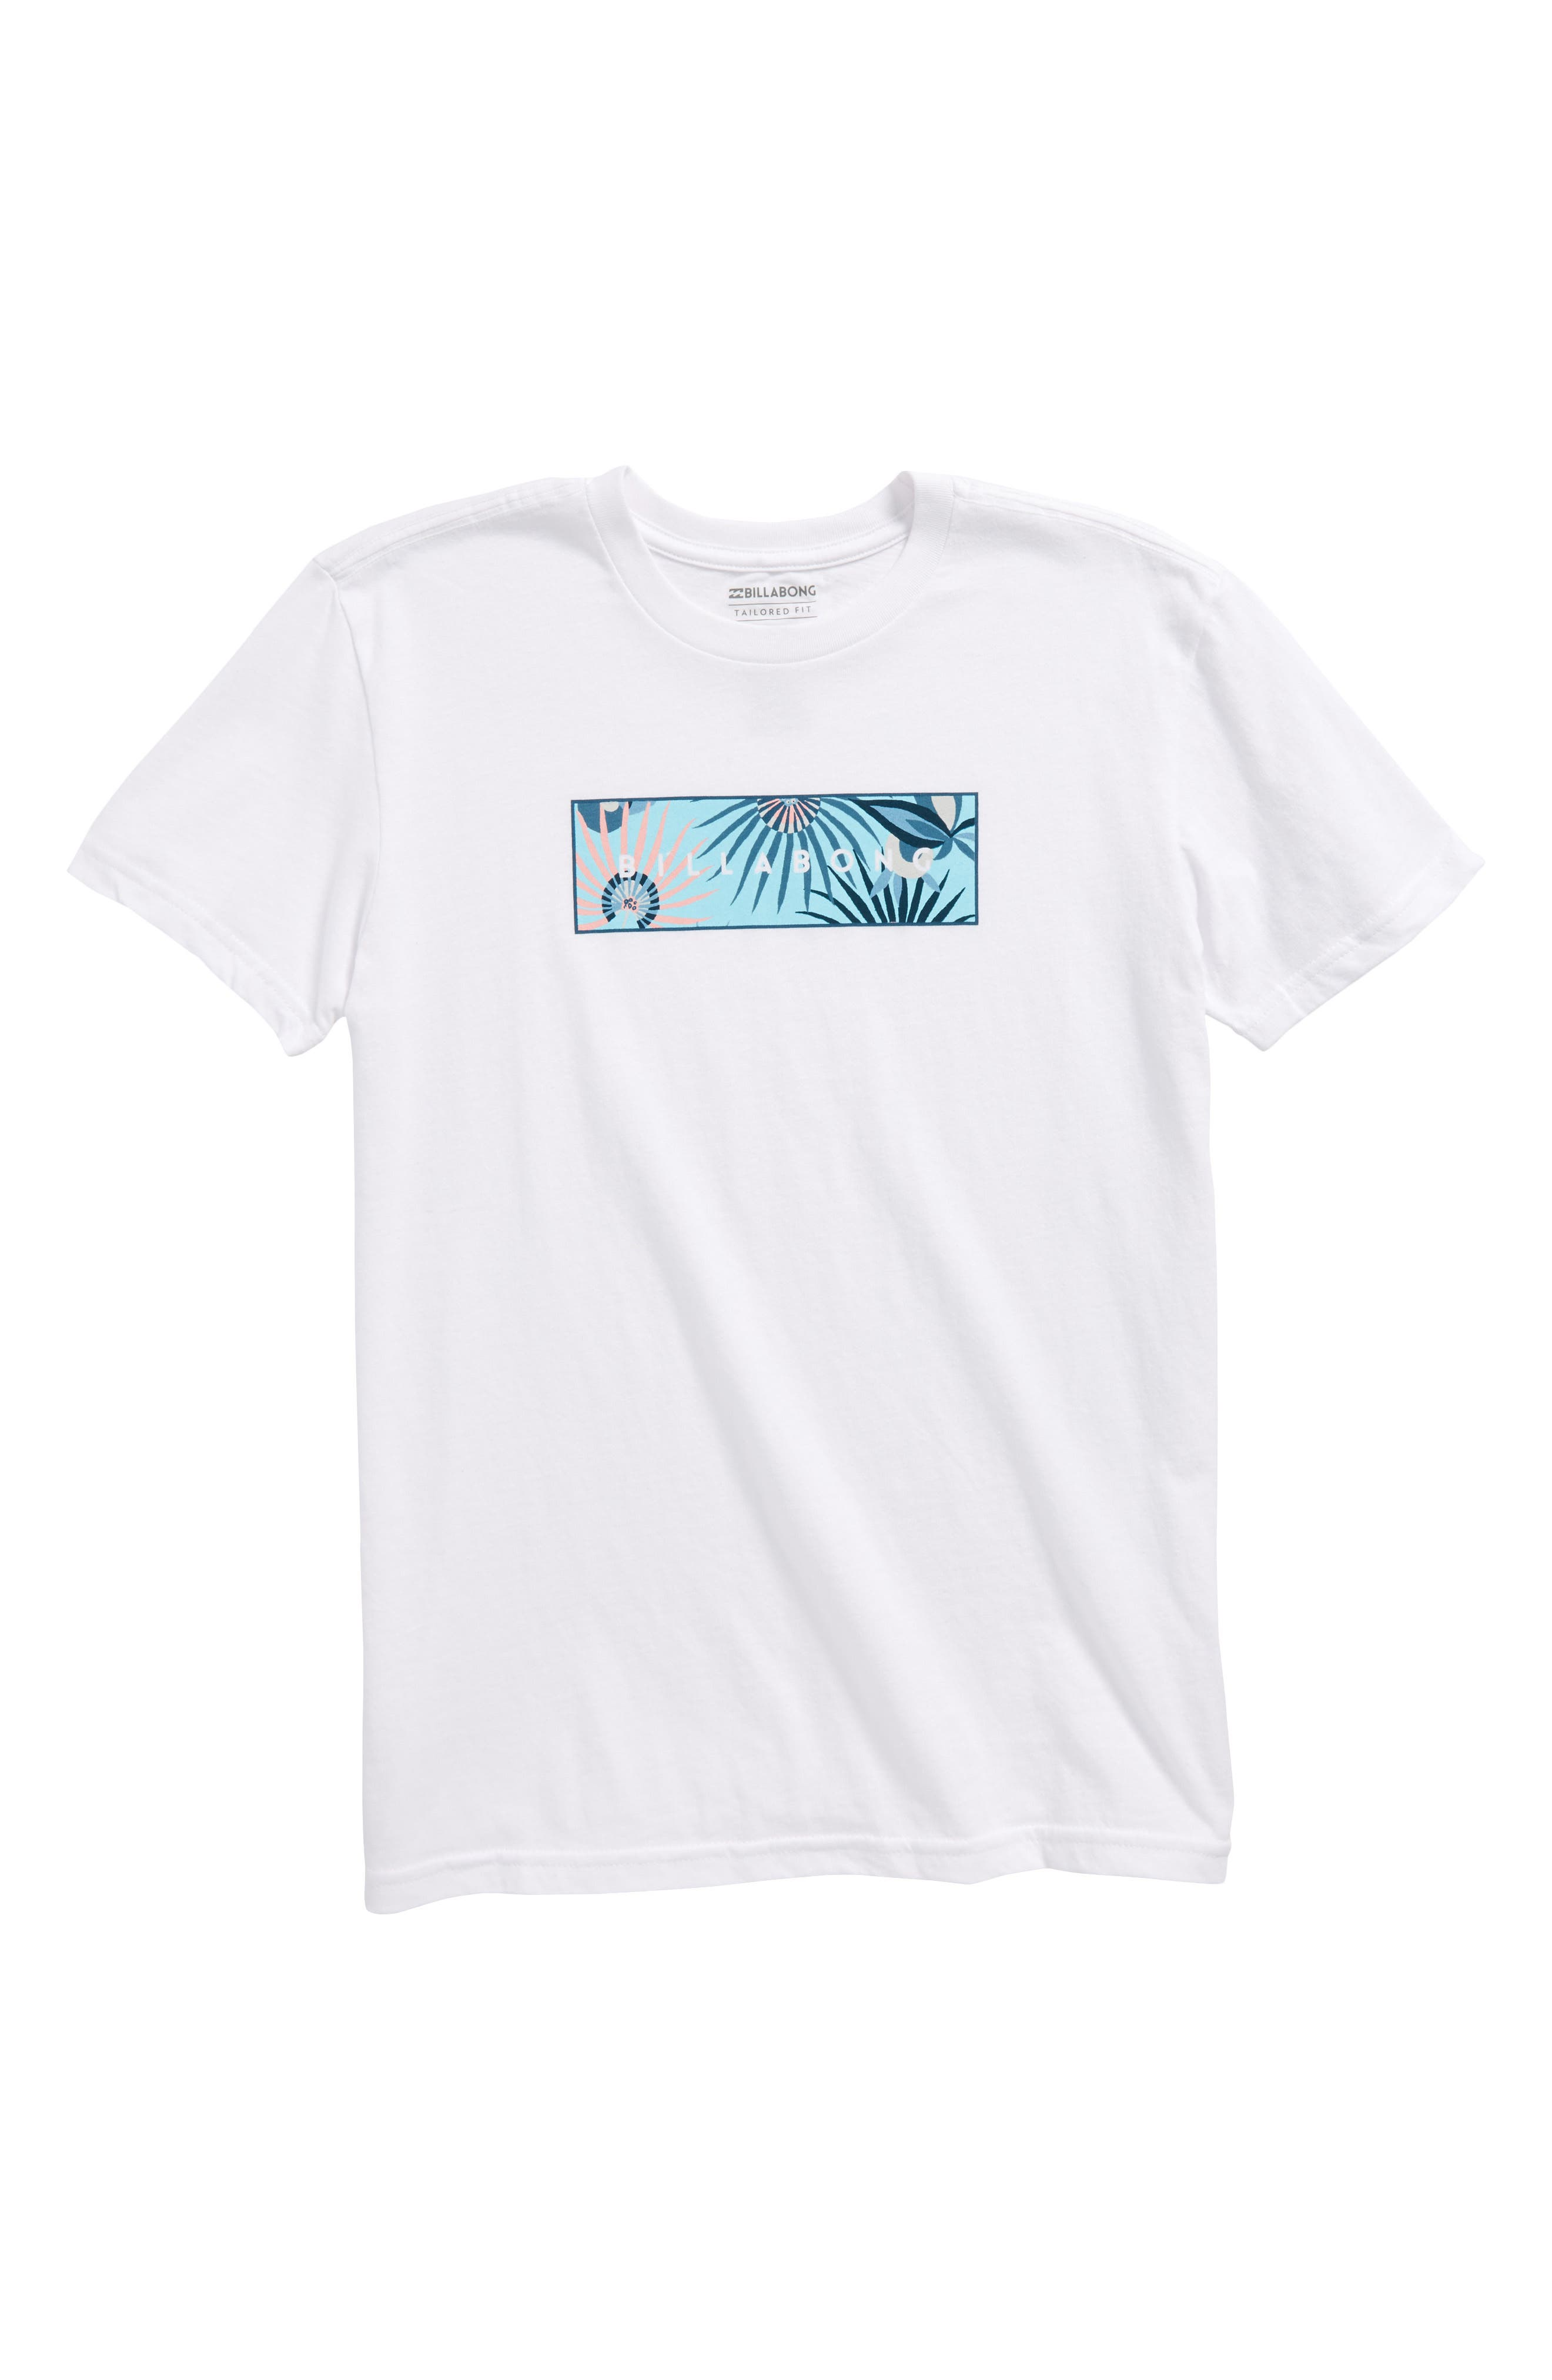 United Graphic T-Shirt,                         Main,                         color, White